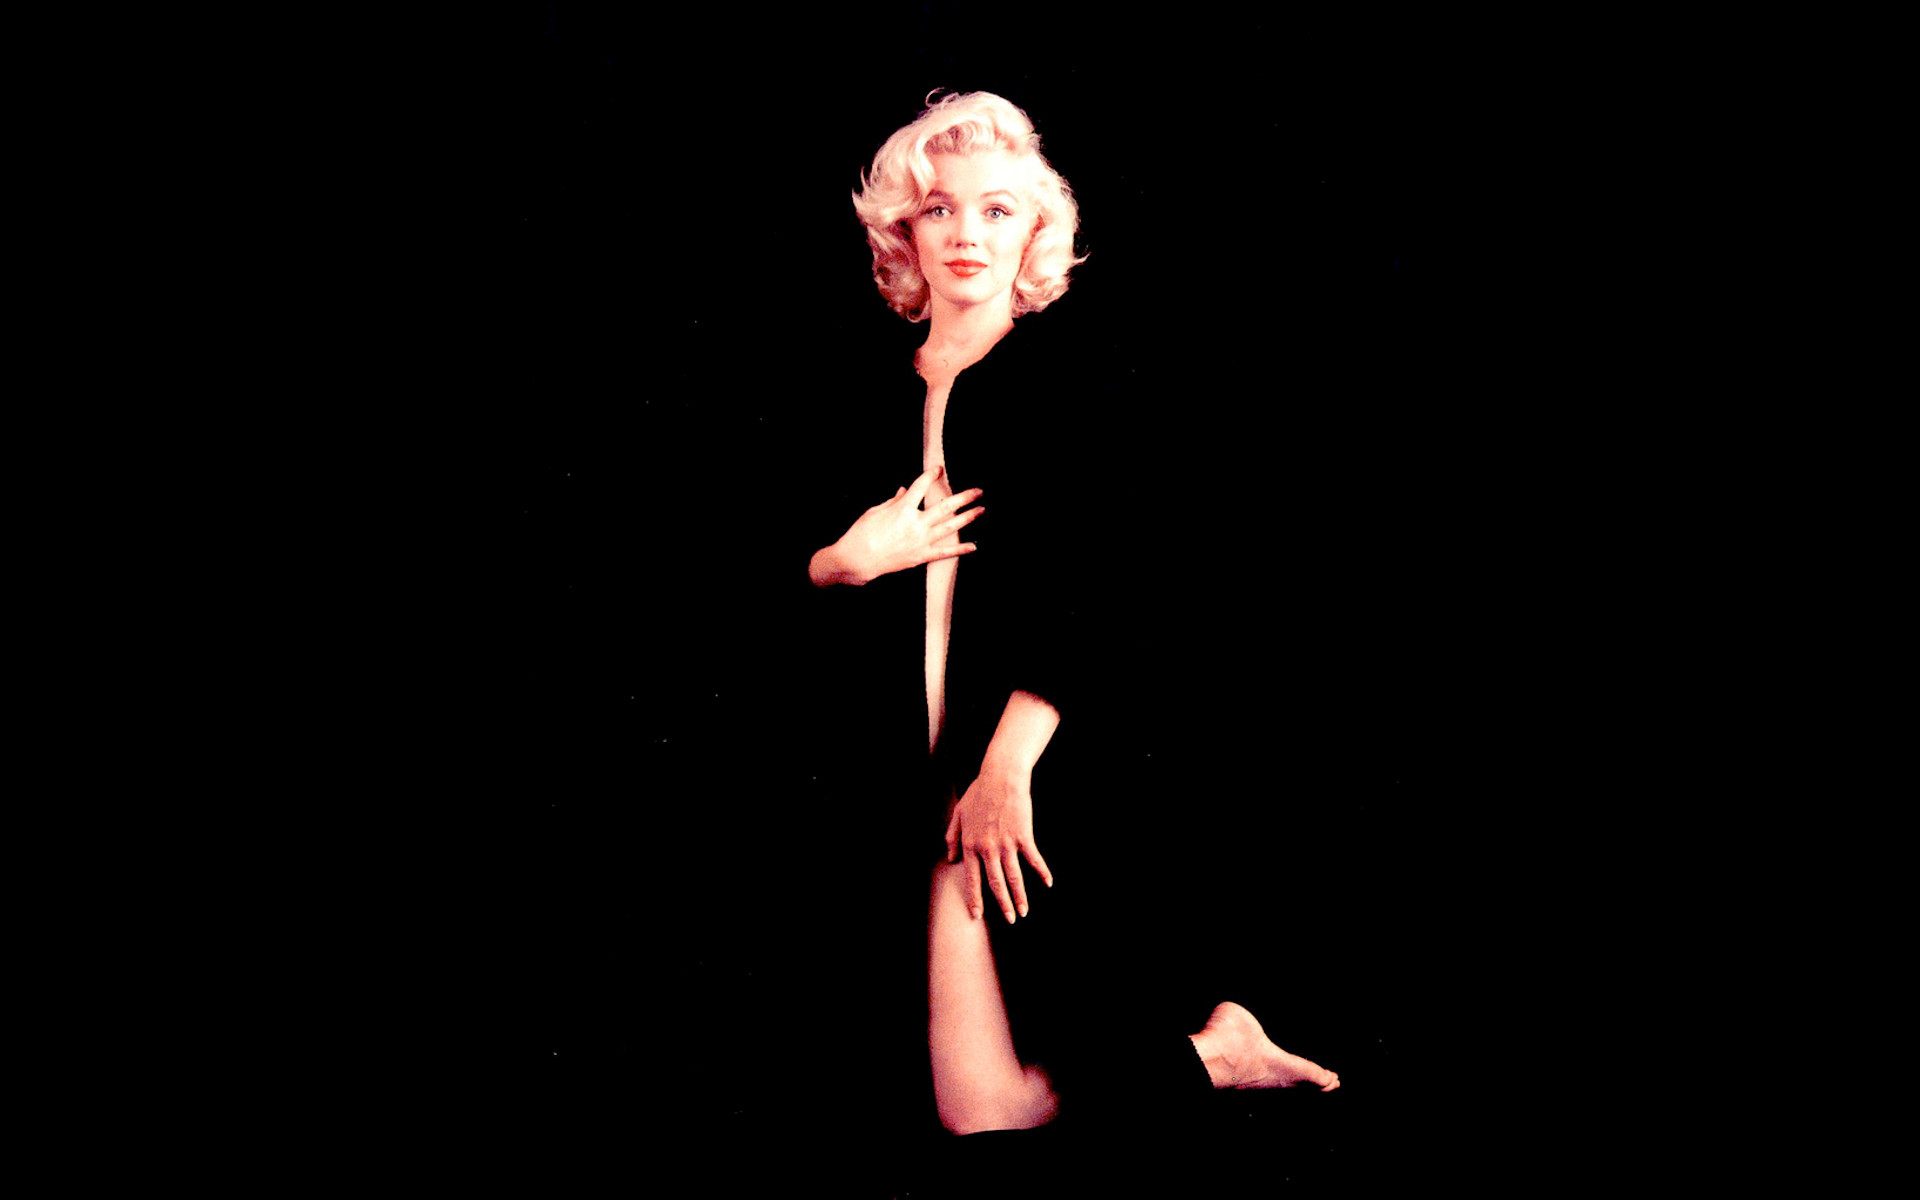 Marilyn Monroe Wallpaper < Images & galleries   Download Wallpaper    Pinterest   Marilyn monroe wallpaper, Marylin monroe and Taylor swift